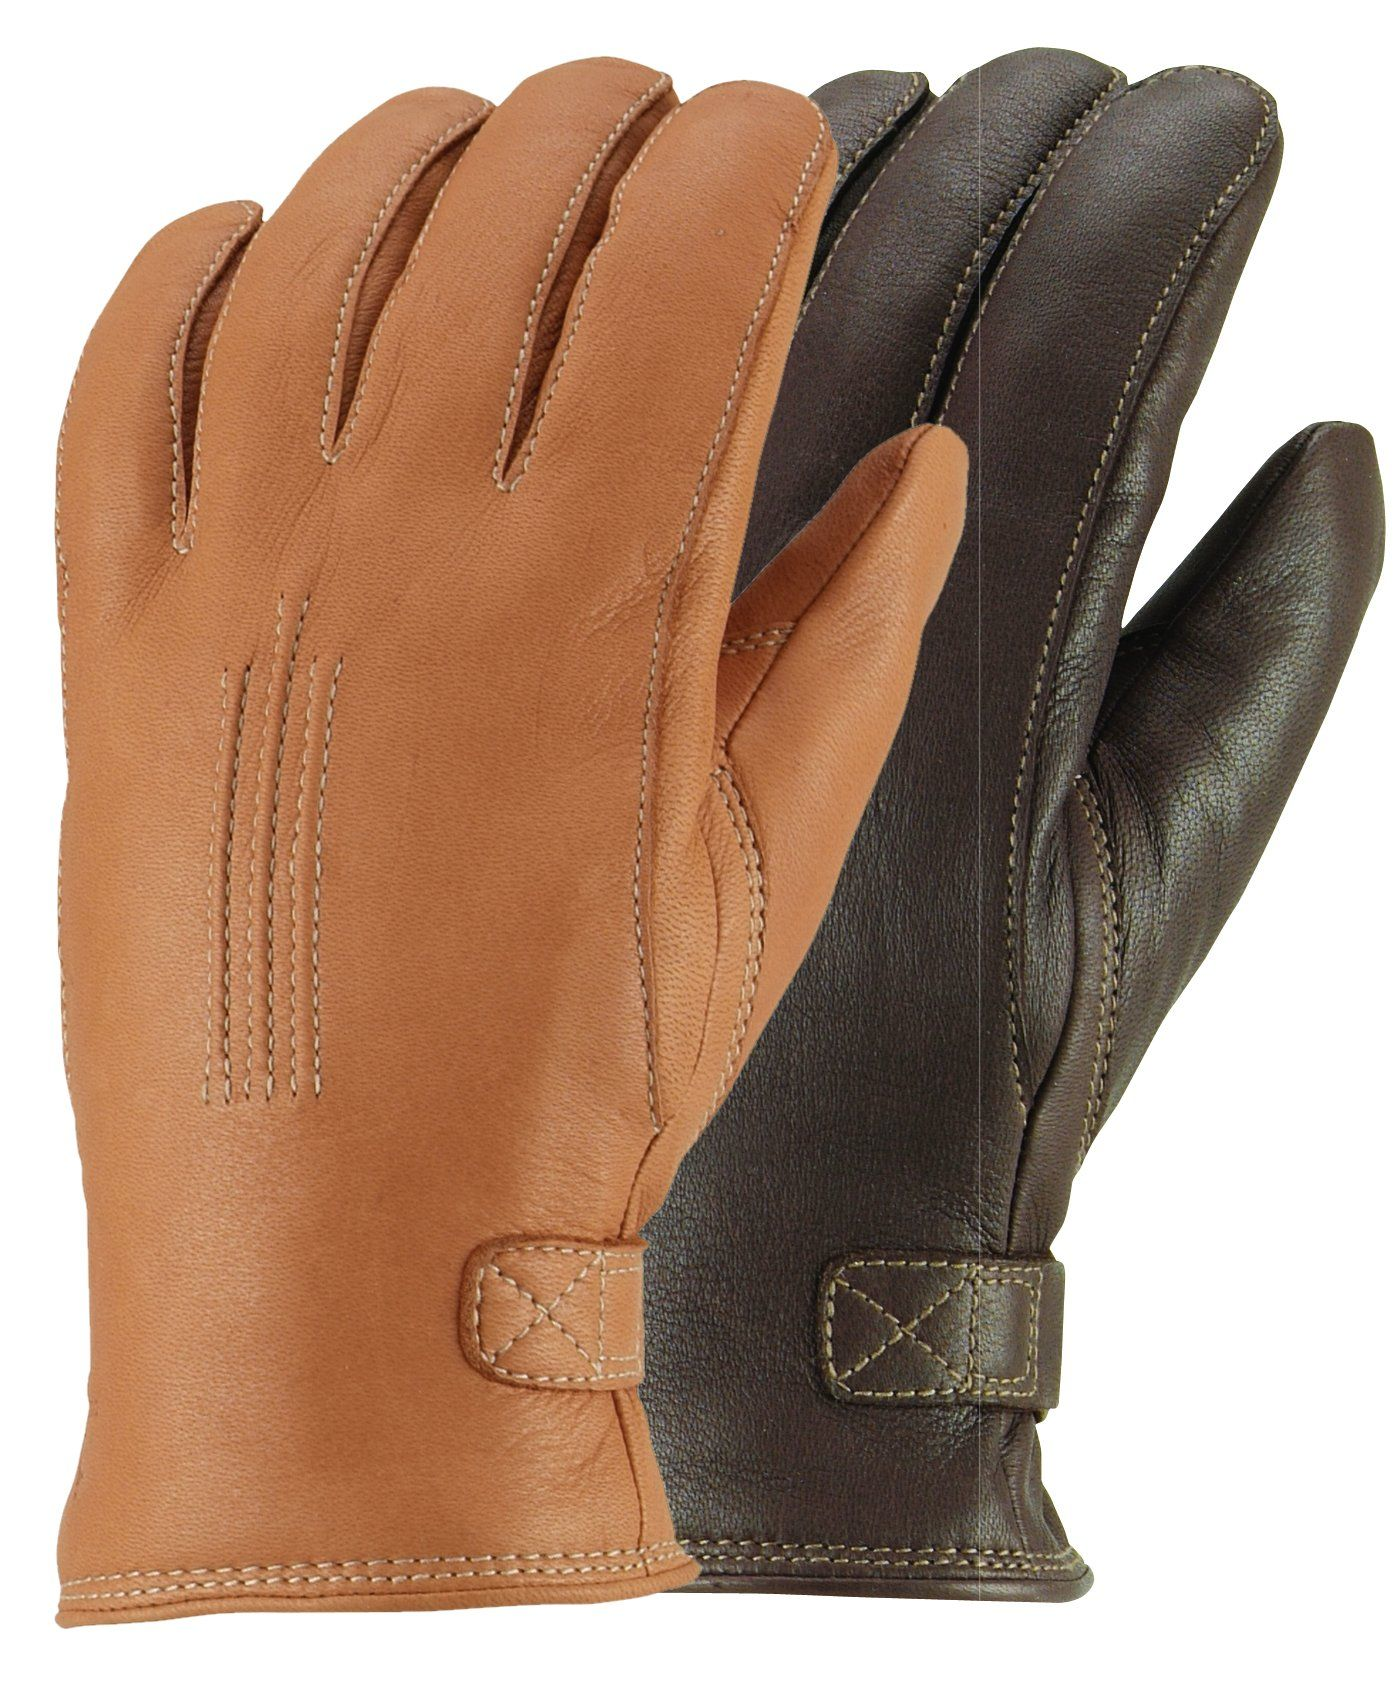 Mens deerskin gloves - Men S Deerskin Gloves With Shearling Lining By Hestra Free Usa Shipping At Leather Gloves Online